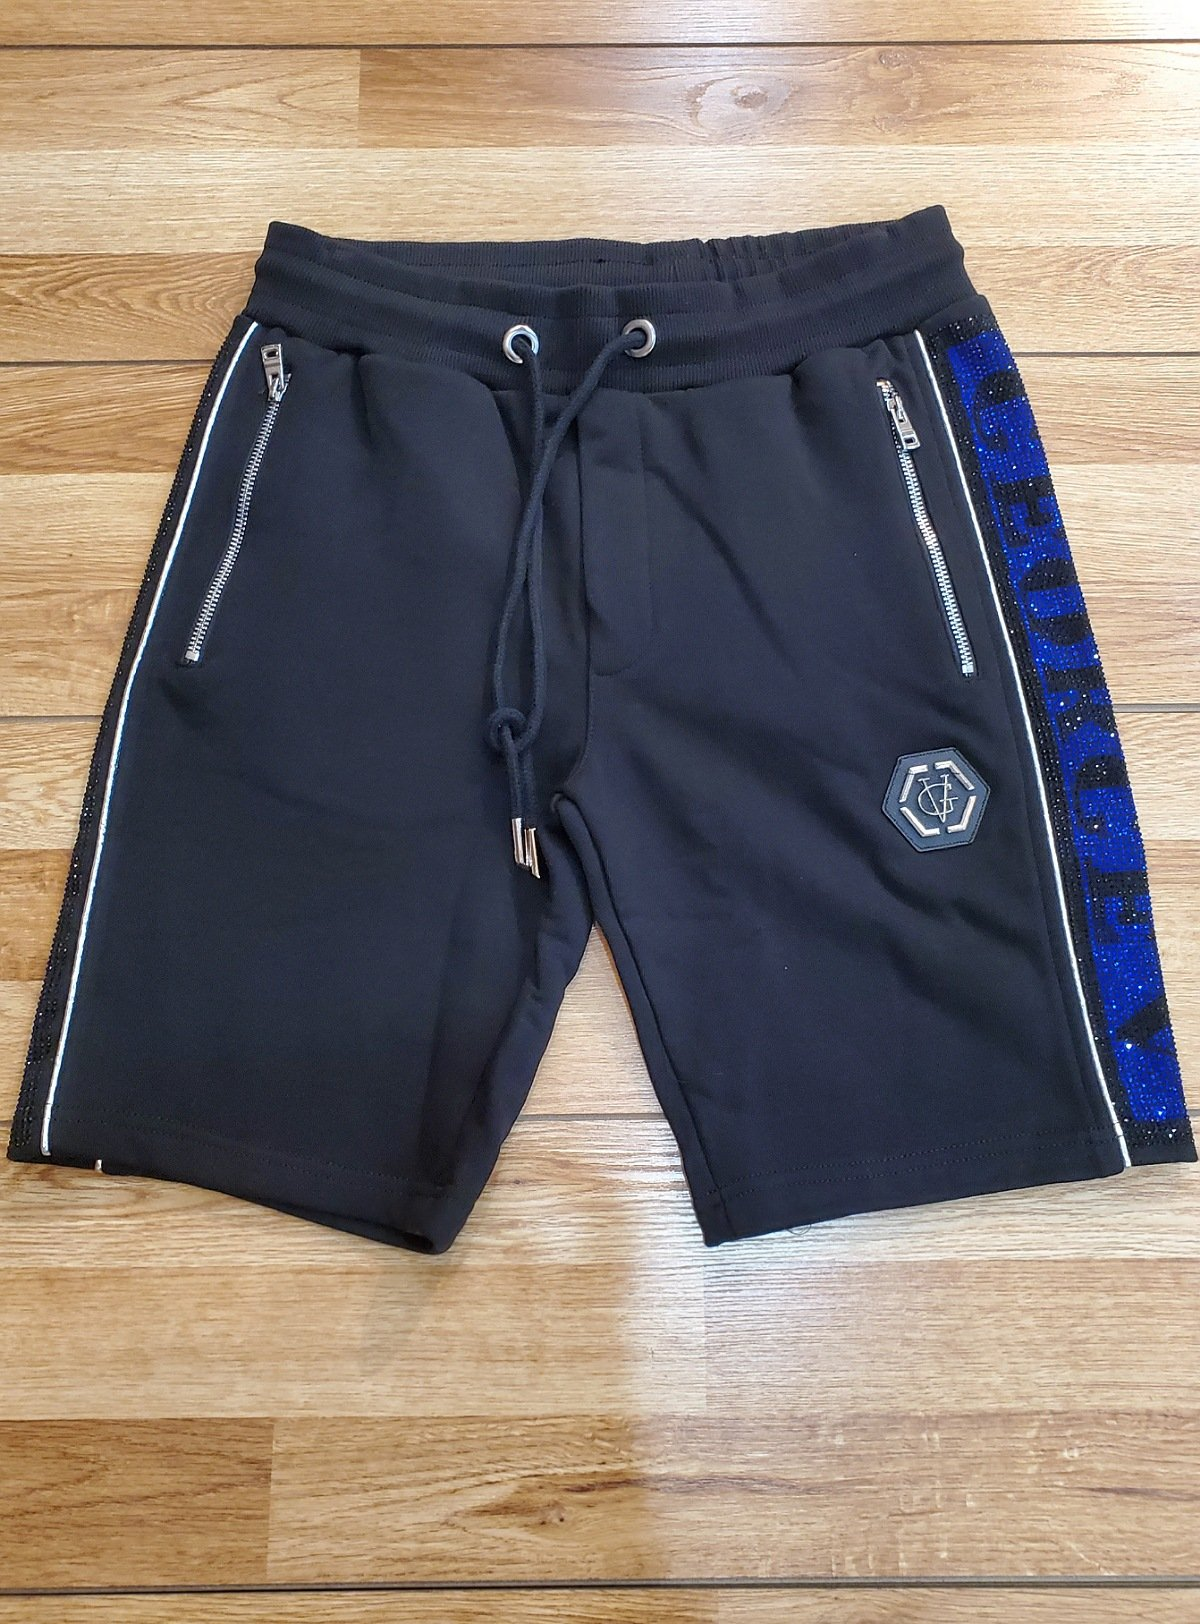 George V Short - Black With Blue And Silver Stones - GV-556